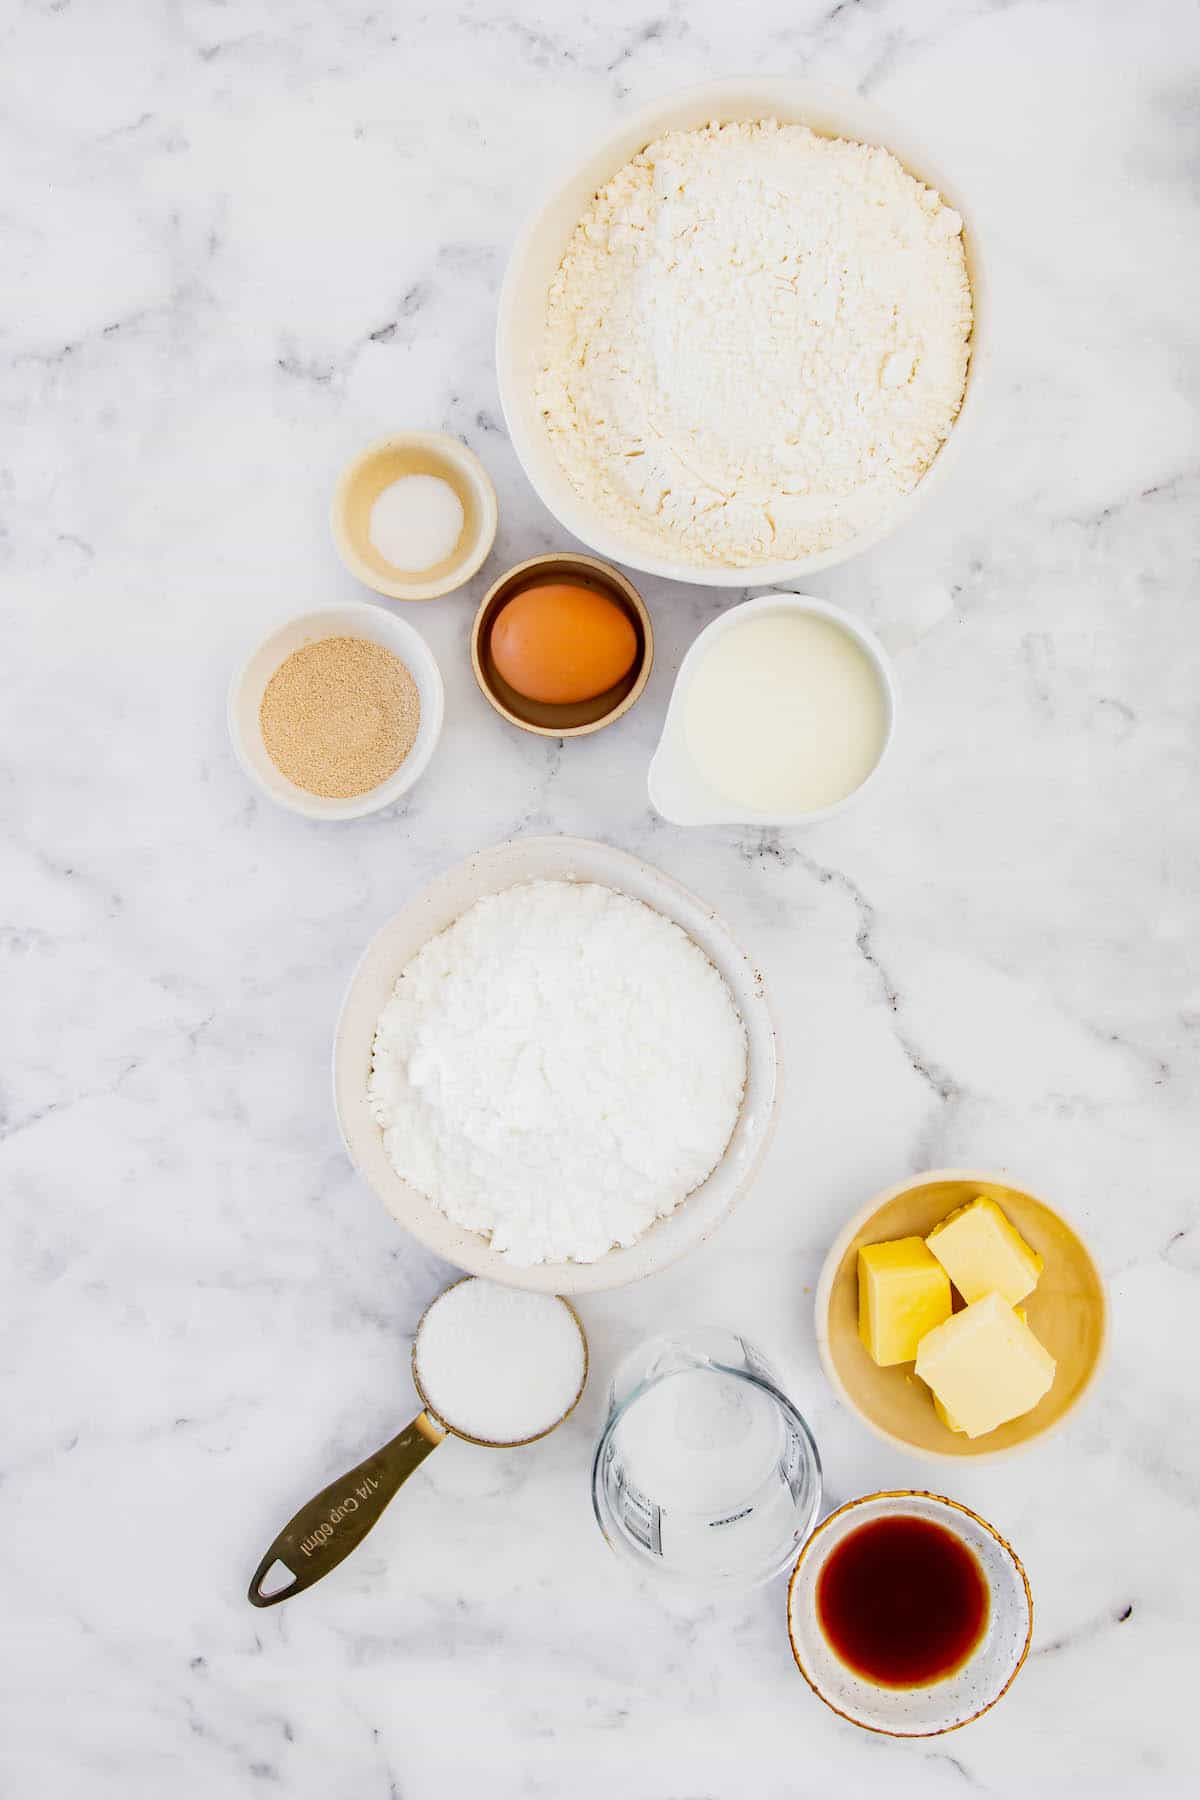 Gluten-Free Flour, Powdered Sugar, Butter, and the Rest of the Air Fryer Donut and Glaze Ingredients on a Marble Counter